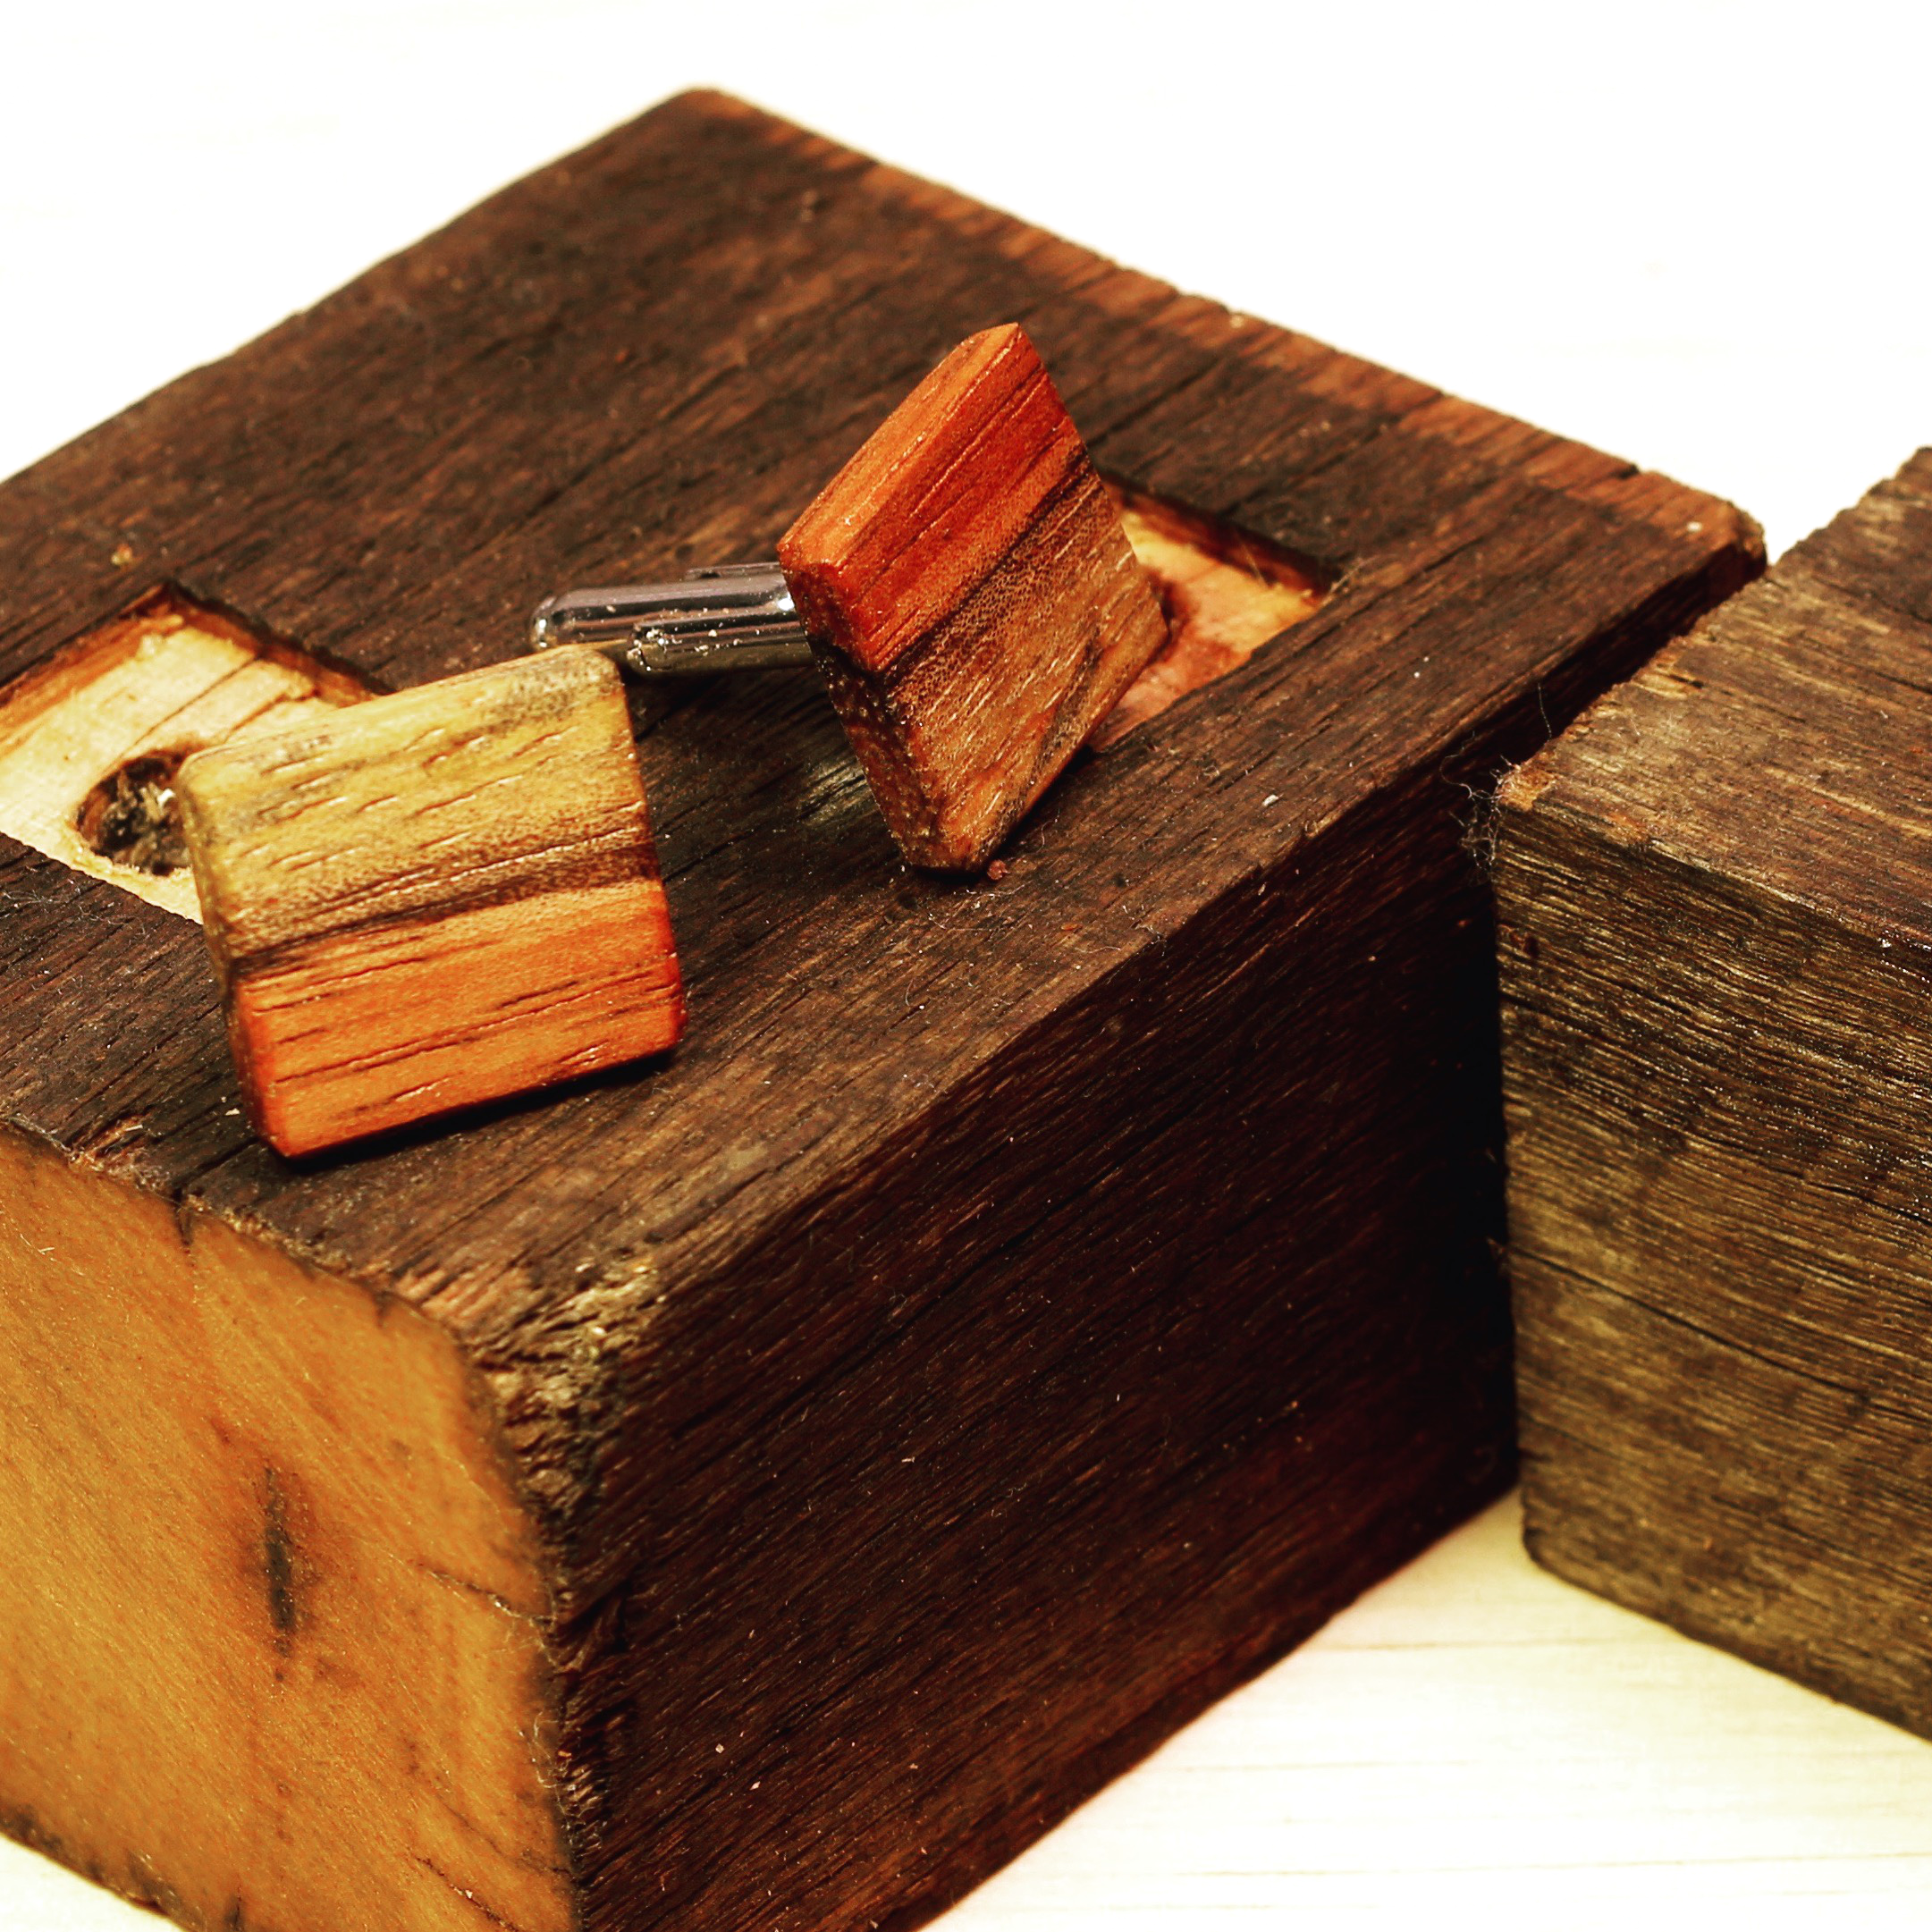 Picture of Wooden Cufflinks With Rustic Display Stand From Reclaimed Wood